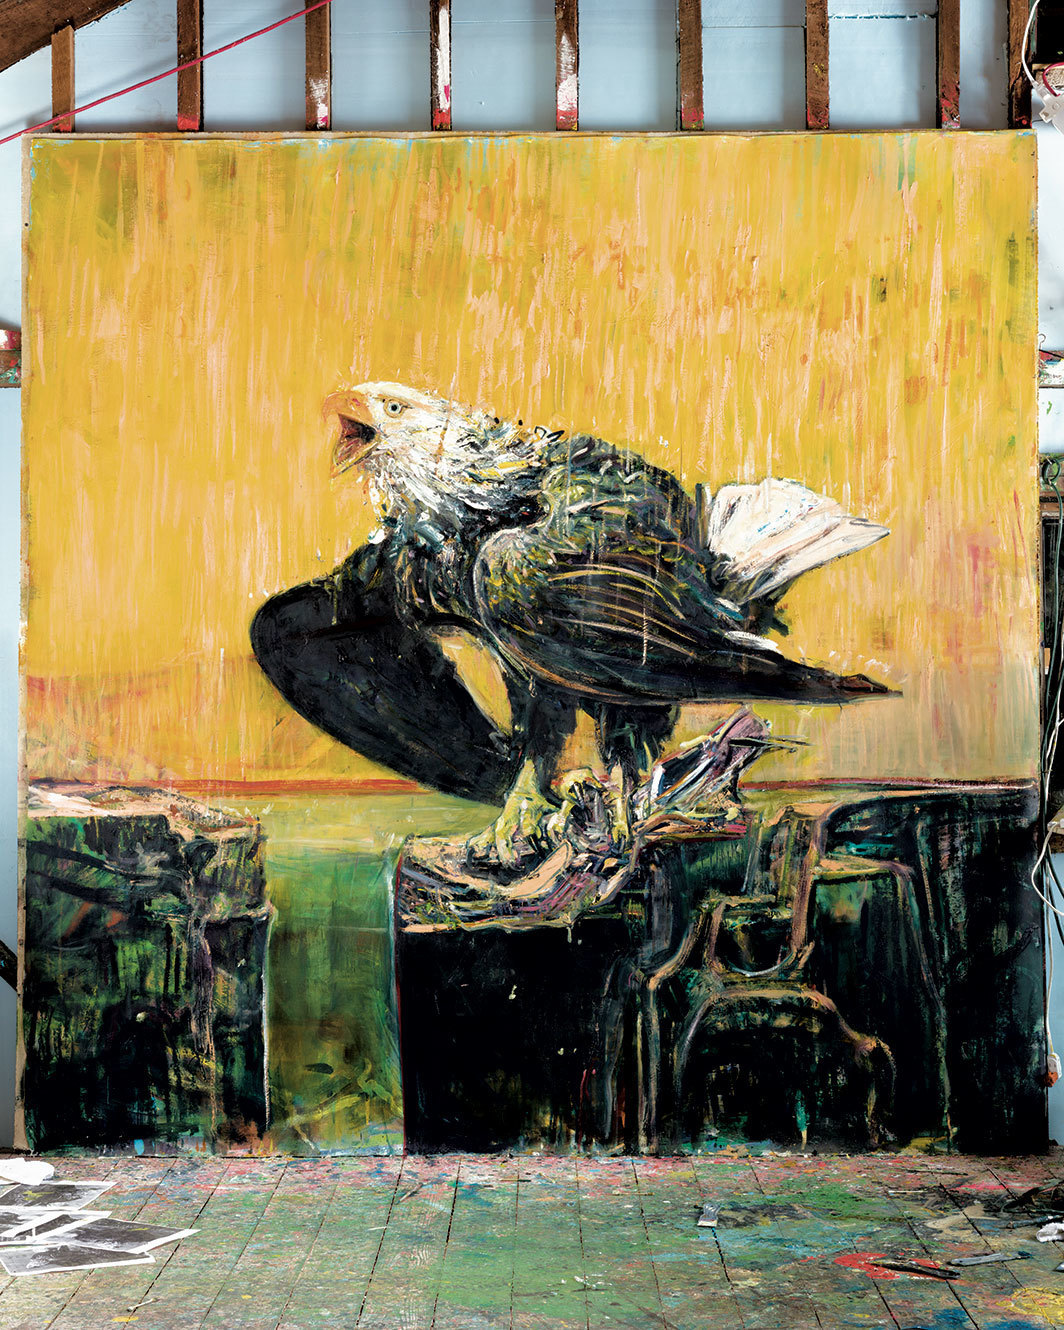 "Cy Gavin, Untitled (Bald Eagle), 2020, acrylic, oil, and oil stick on canvas, 90 × 90"". Installation view, Cy Gavin's studio, upstate New York."